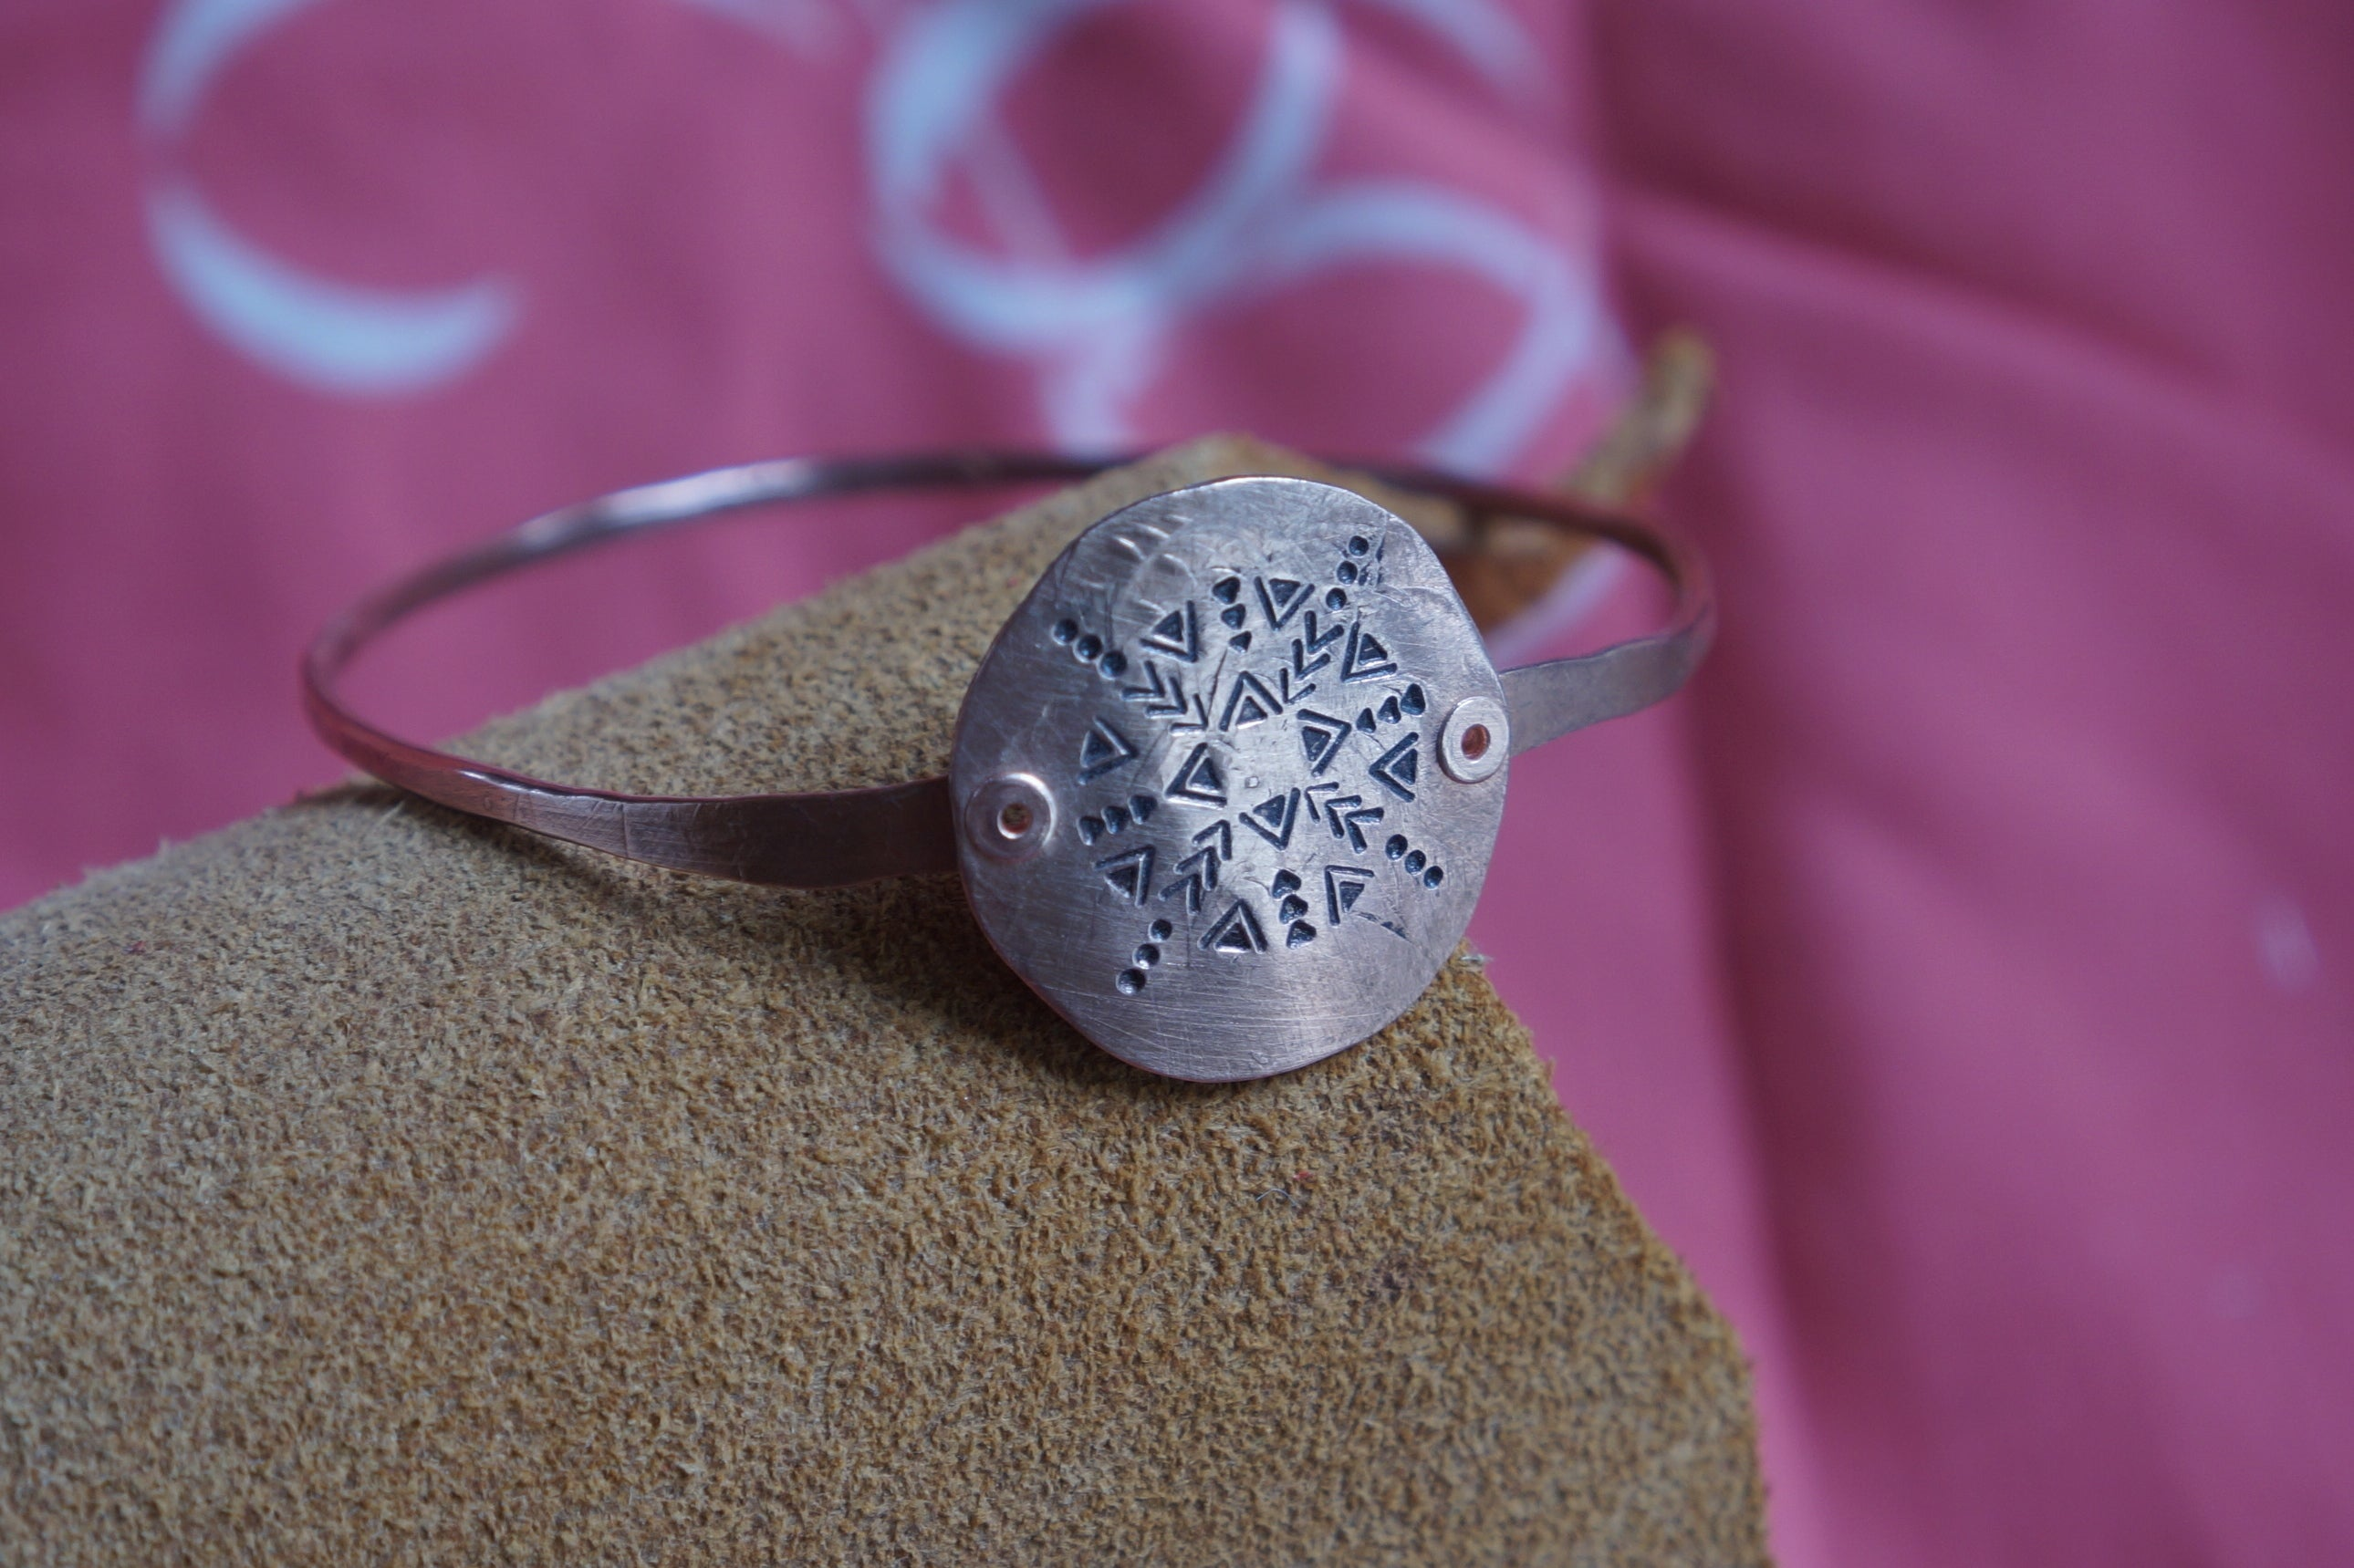 Hammered and stamped copper geometric style design bangle bracelet